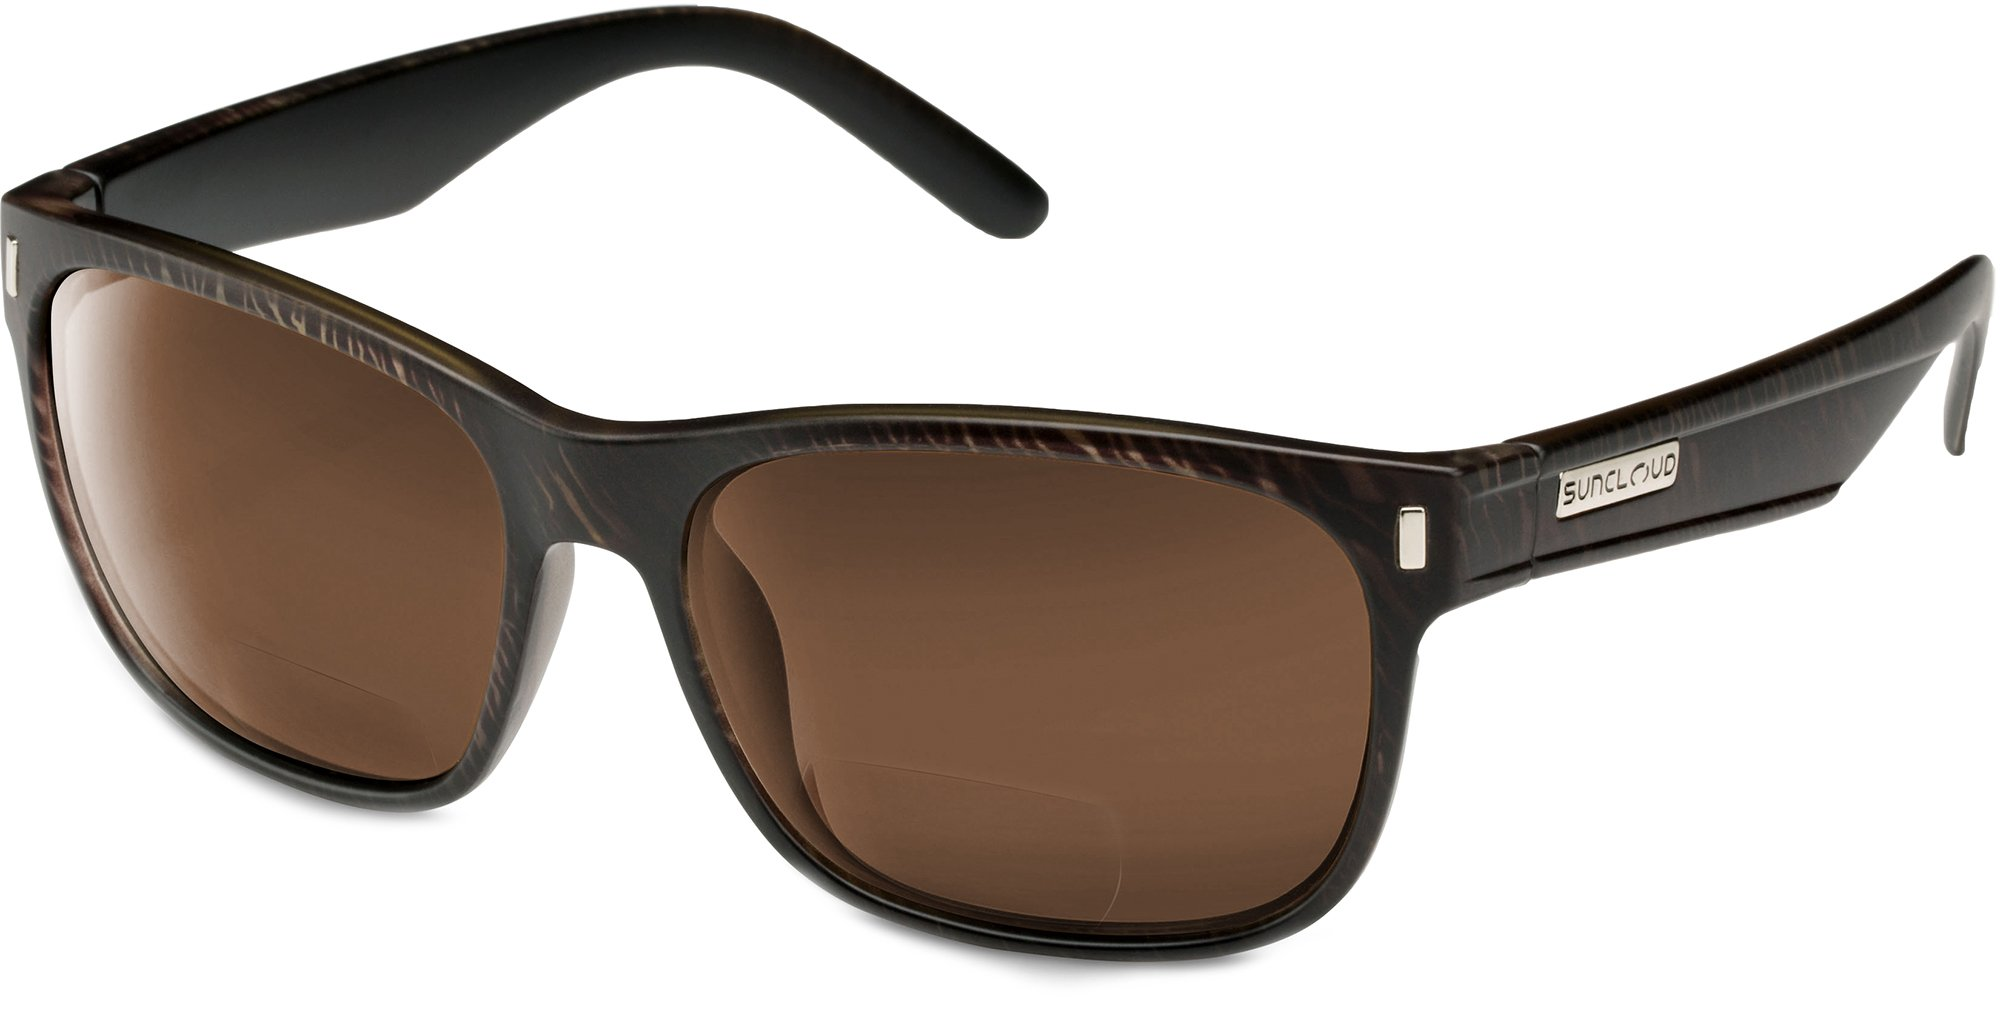 Suncloud Dashboard Polarized Bi-Focal Reading Sunglasses in Blackened Tortoise with Brown Lens +2.75